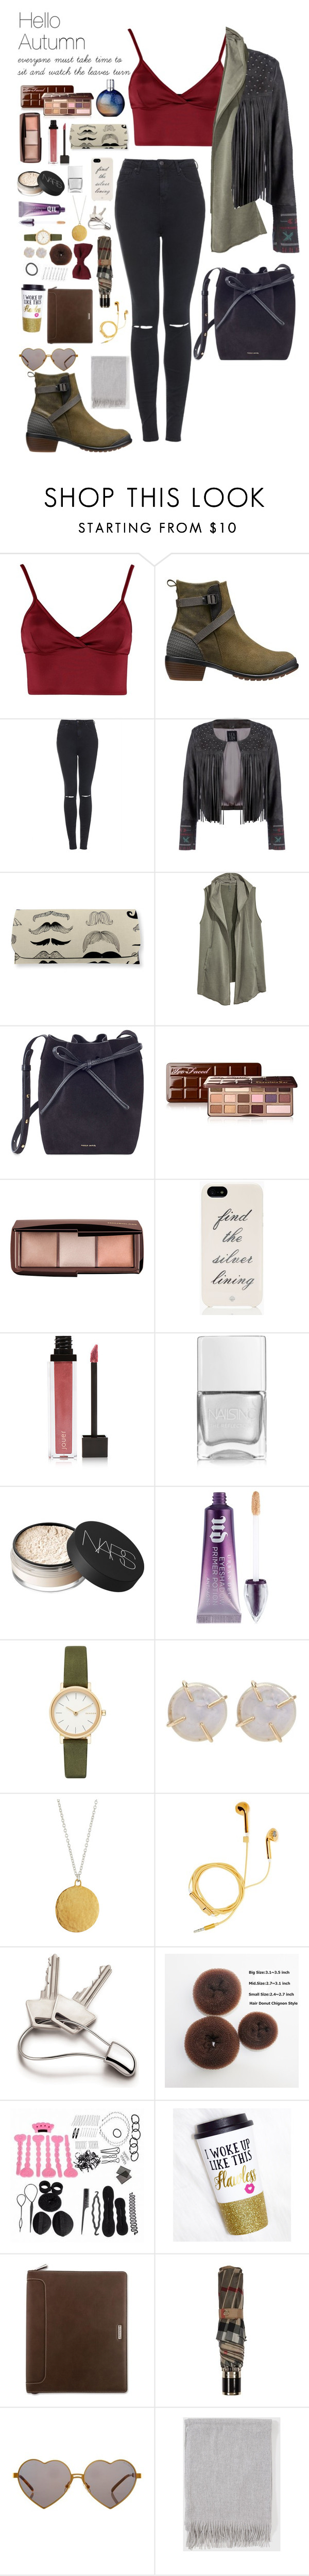 """""""Hello autumn"""" by ugglorimossen ❤ liked on Polyvore featuring Lipsy, Keen Footwear, Topshop, H&M, Mansur Gavriel, Too Faced Cosmetics, Hourglass Cosmetics, Kate Spade, Jouer and Nails Inc."""